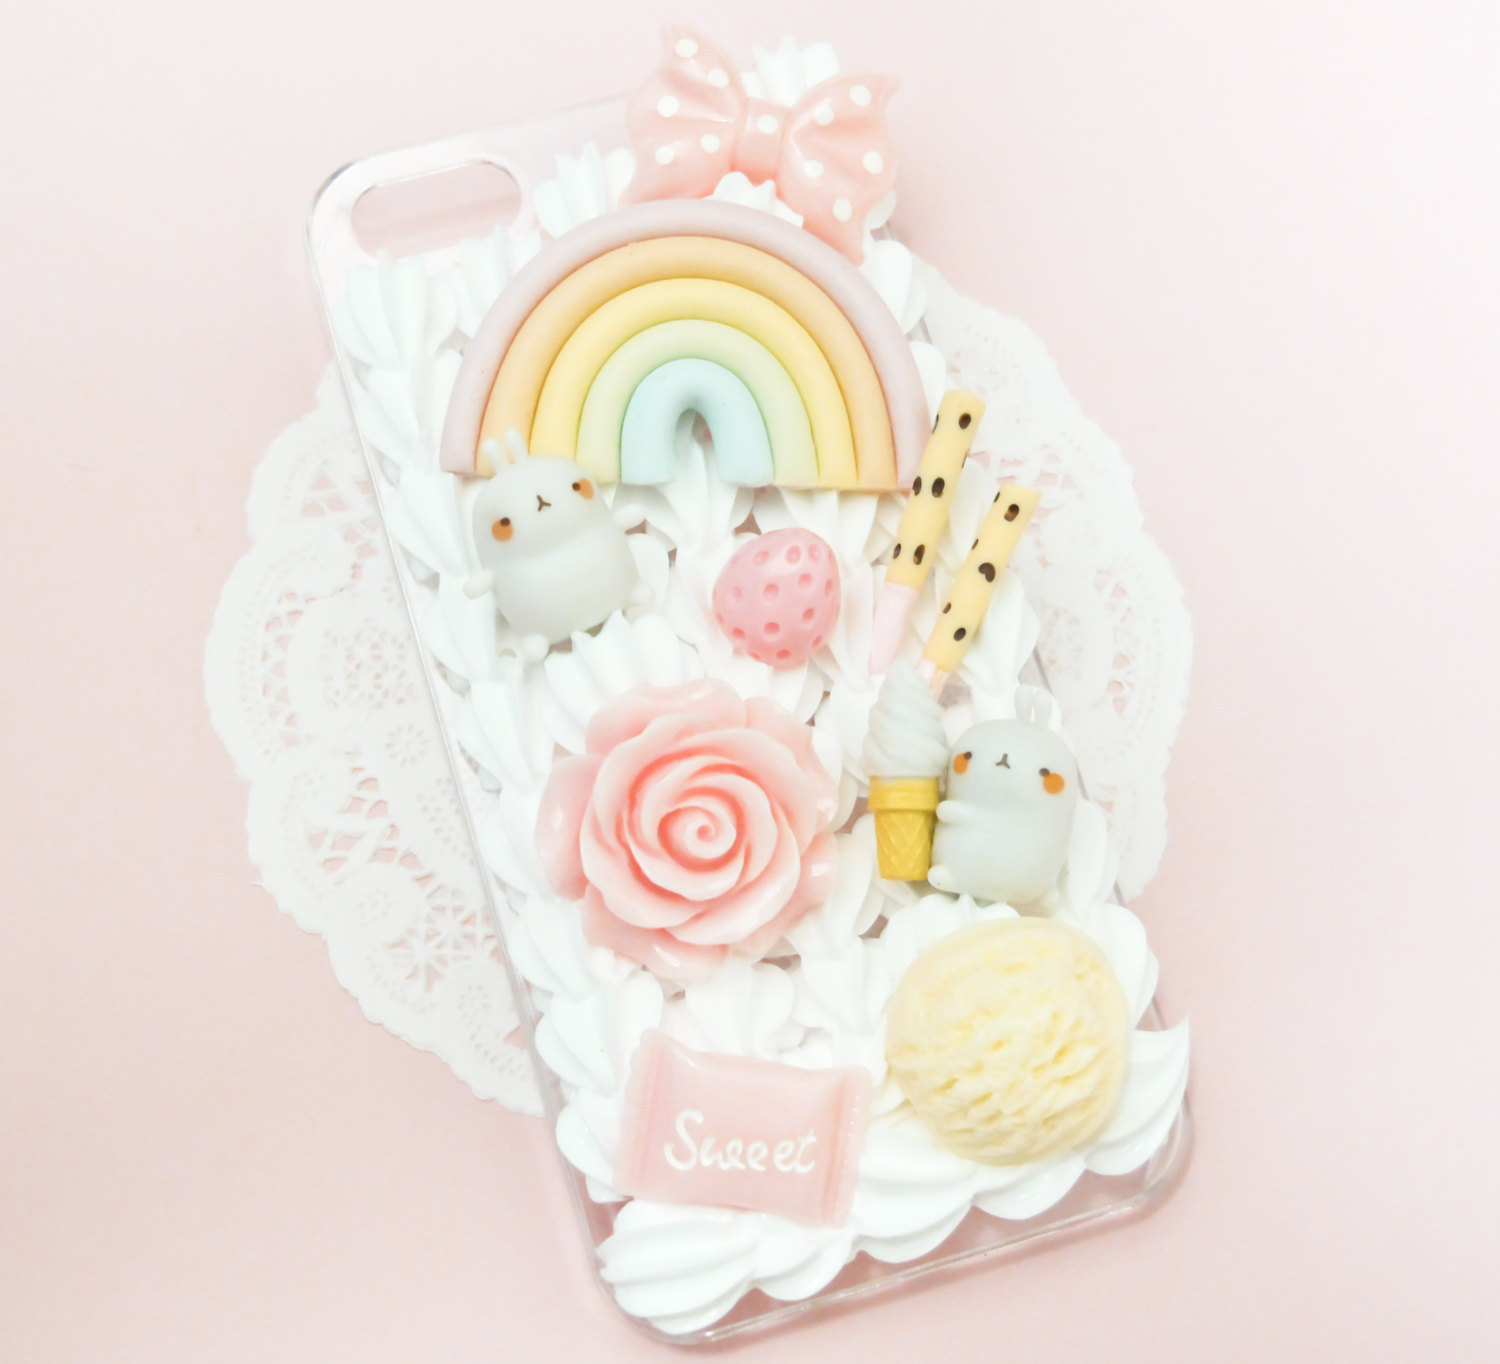 new product a1c72 0e390 MADE TO ORDER Molang Kawaii Pastel Sweets Rainbow Whipped Cream Handmade  Custom IPhone Samsung Decoden Case